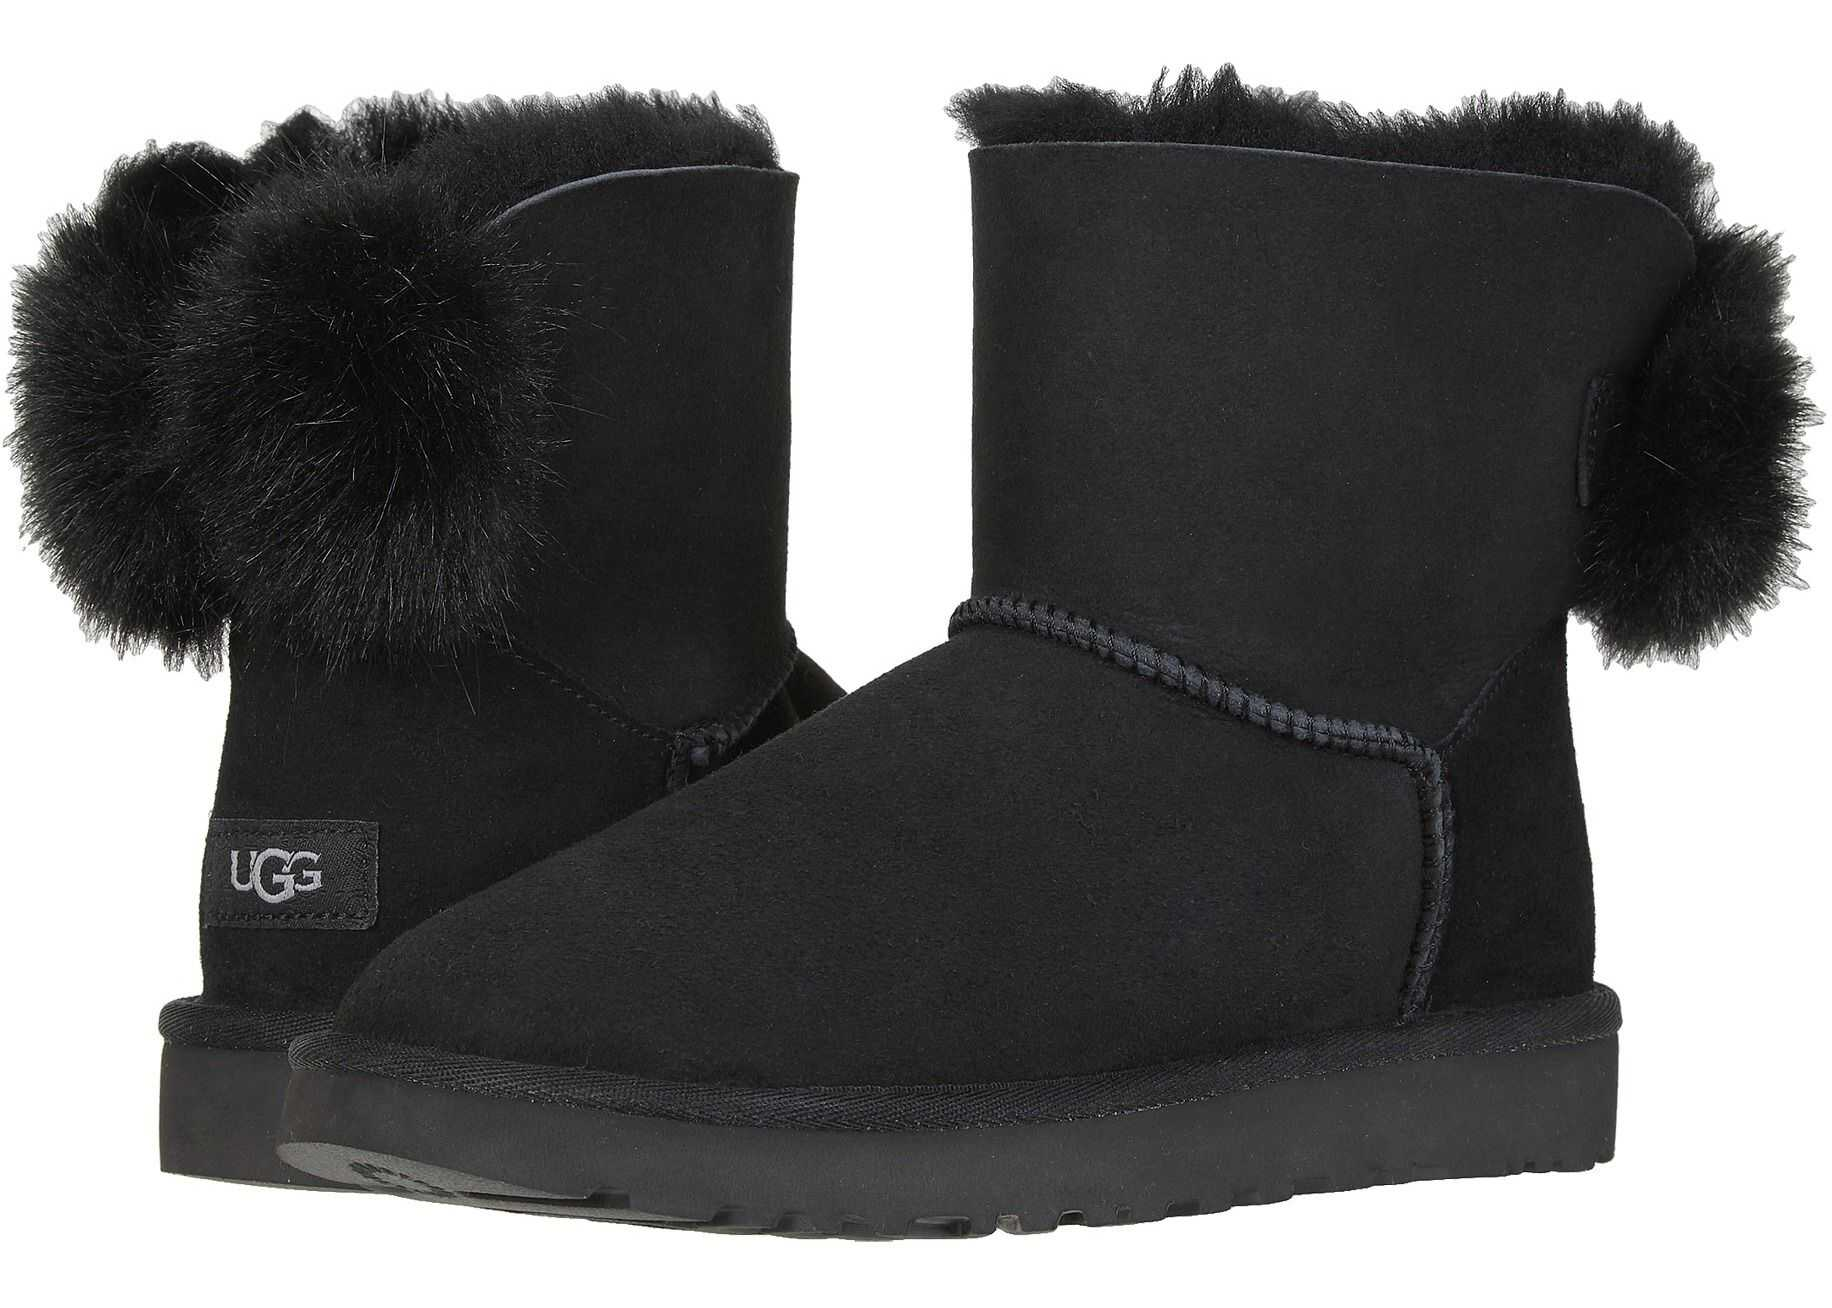 UGG Mini Puff Crystal Bow Black